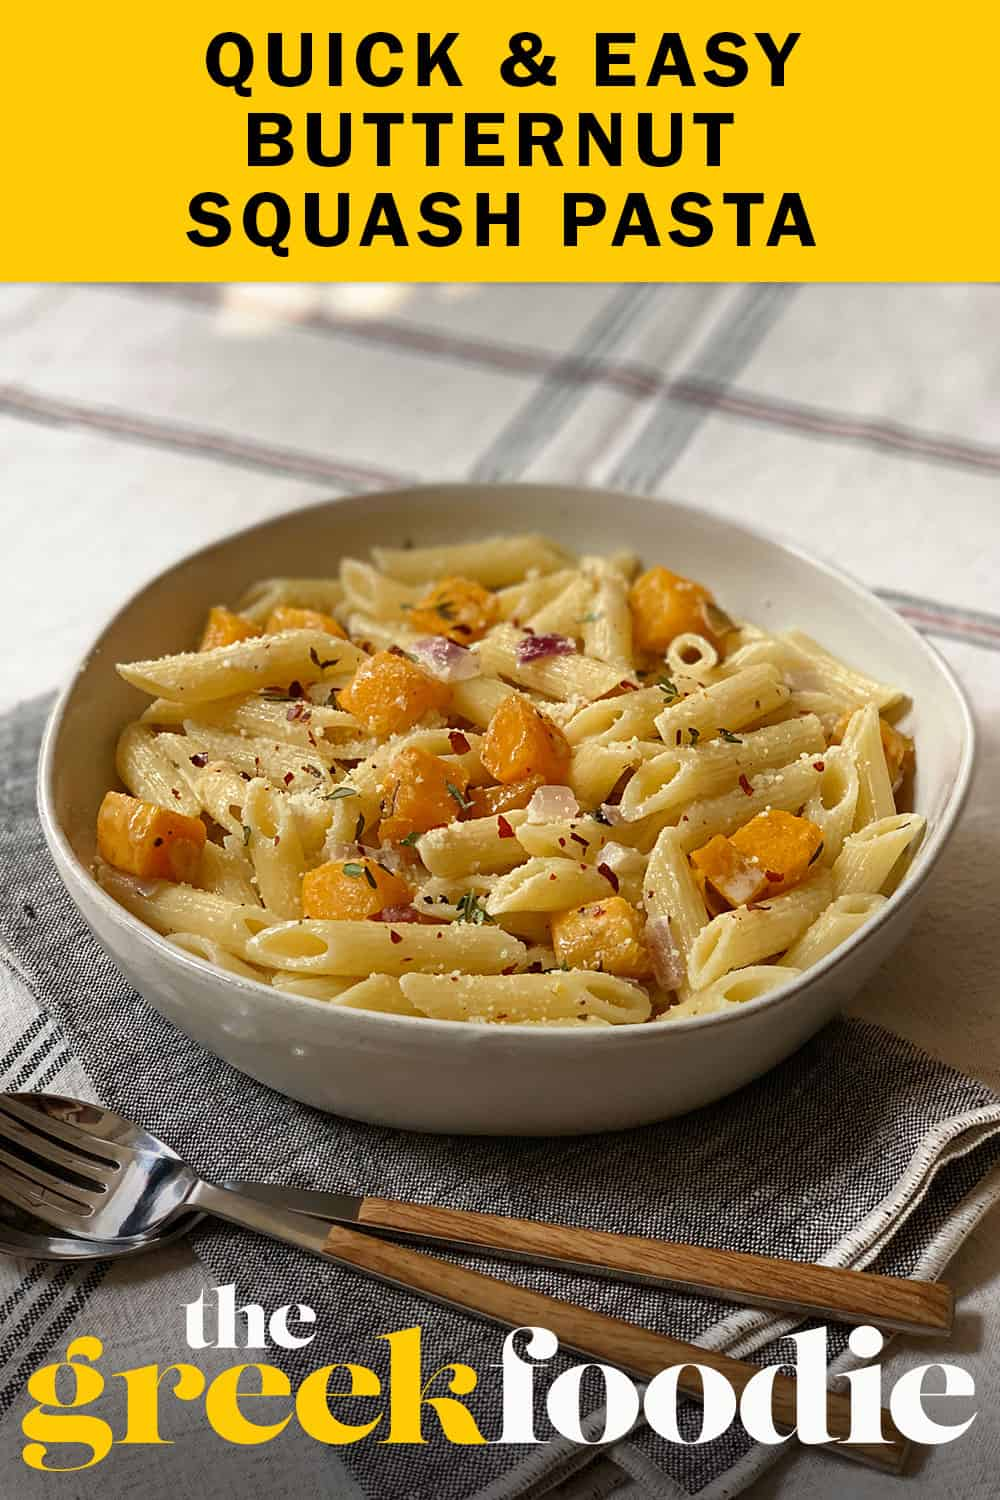 Lovely butternut squash penne pasta, with fragrant sage lots of parmesan cheese and extra virgin olive oil.